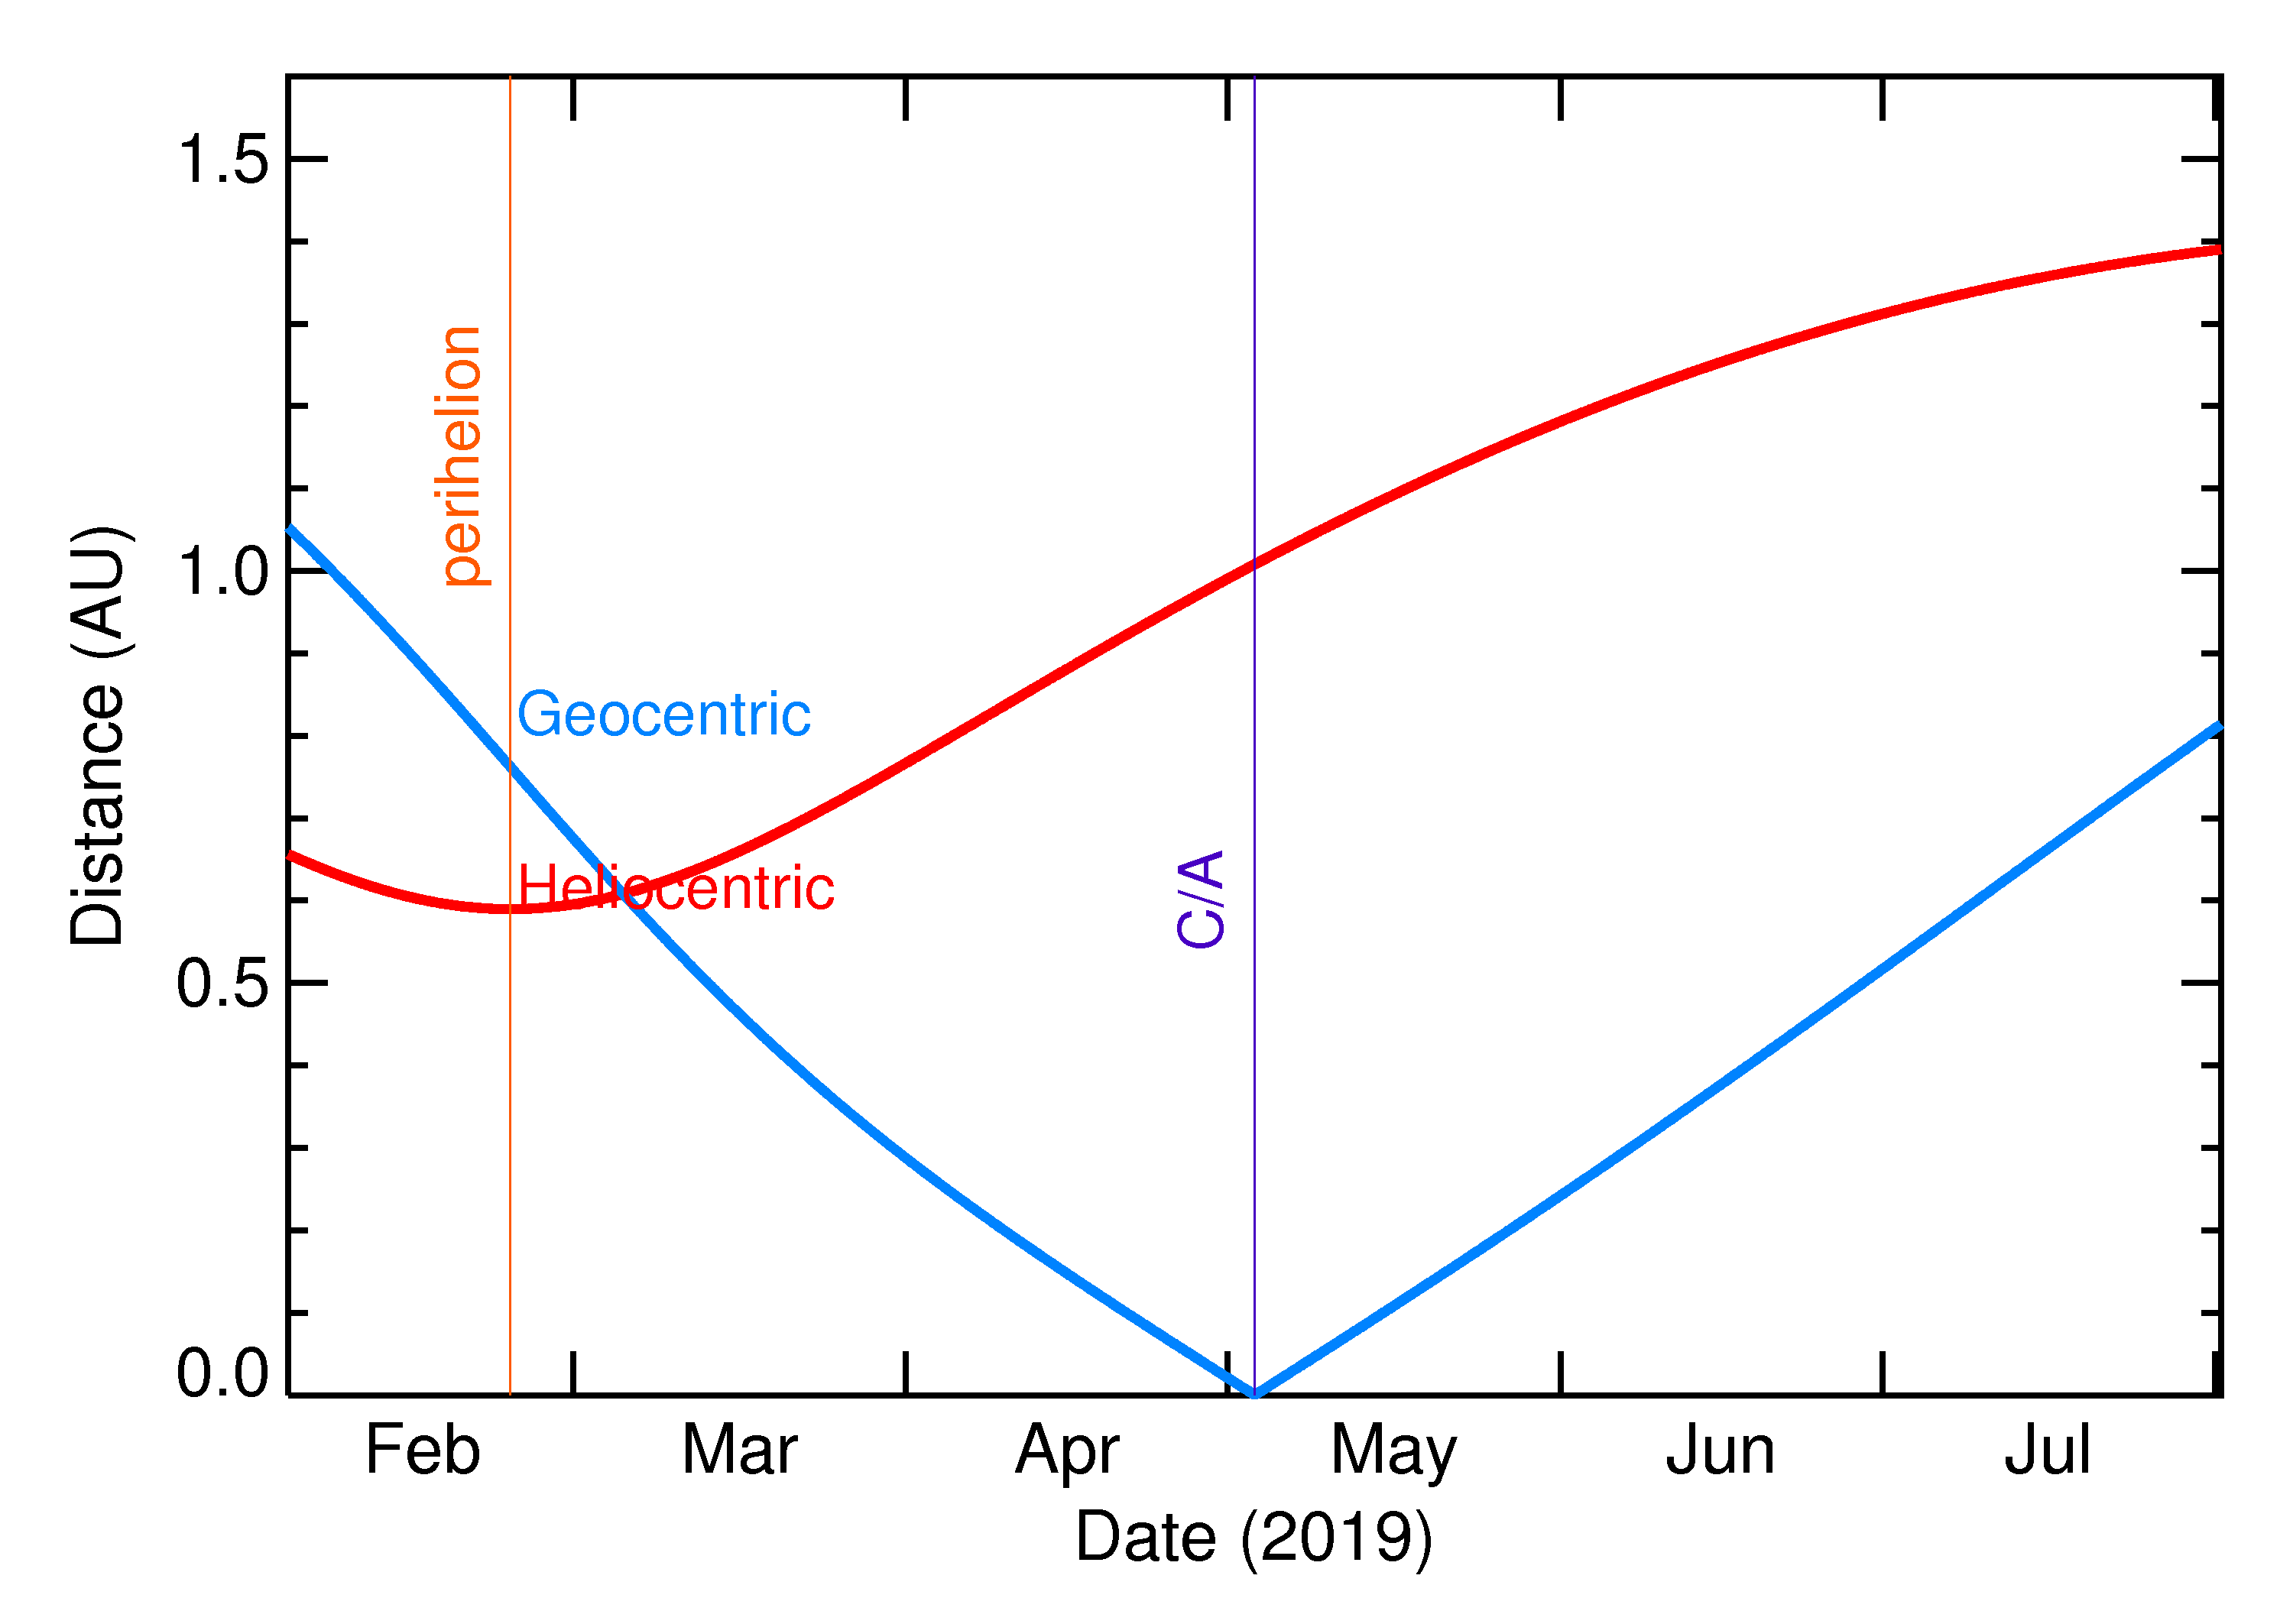 Heliocentric and Geocentric Distances of 2019 JX1 in the months around closest approach